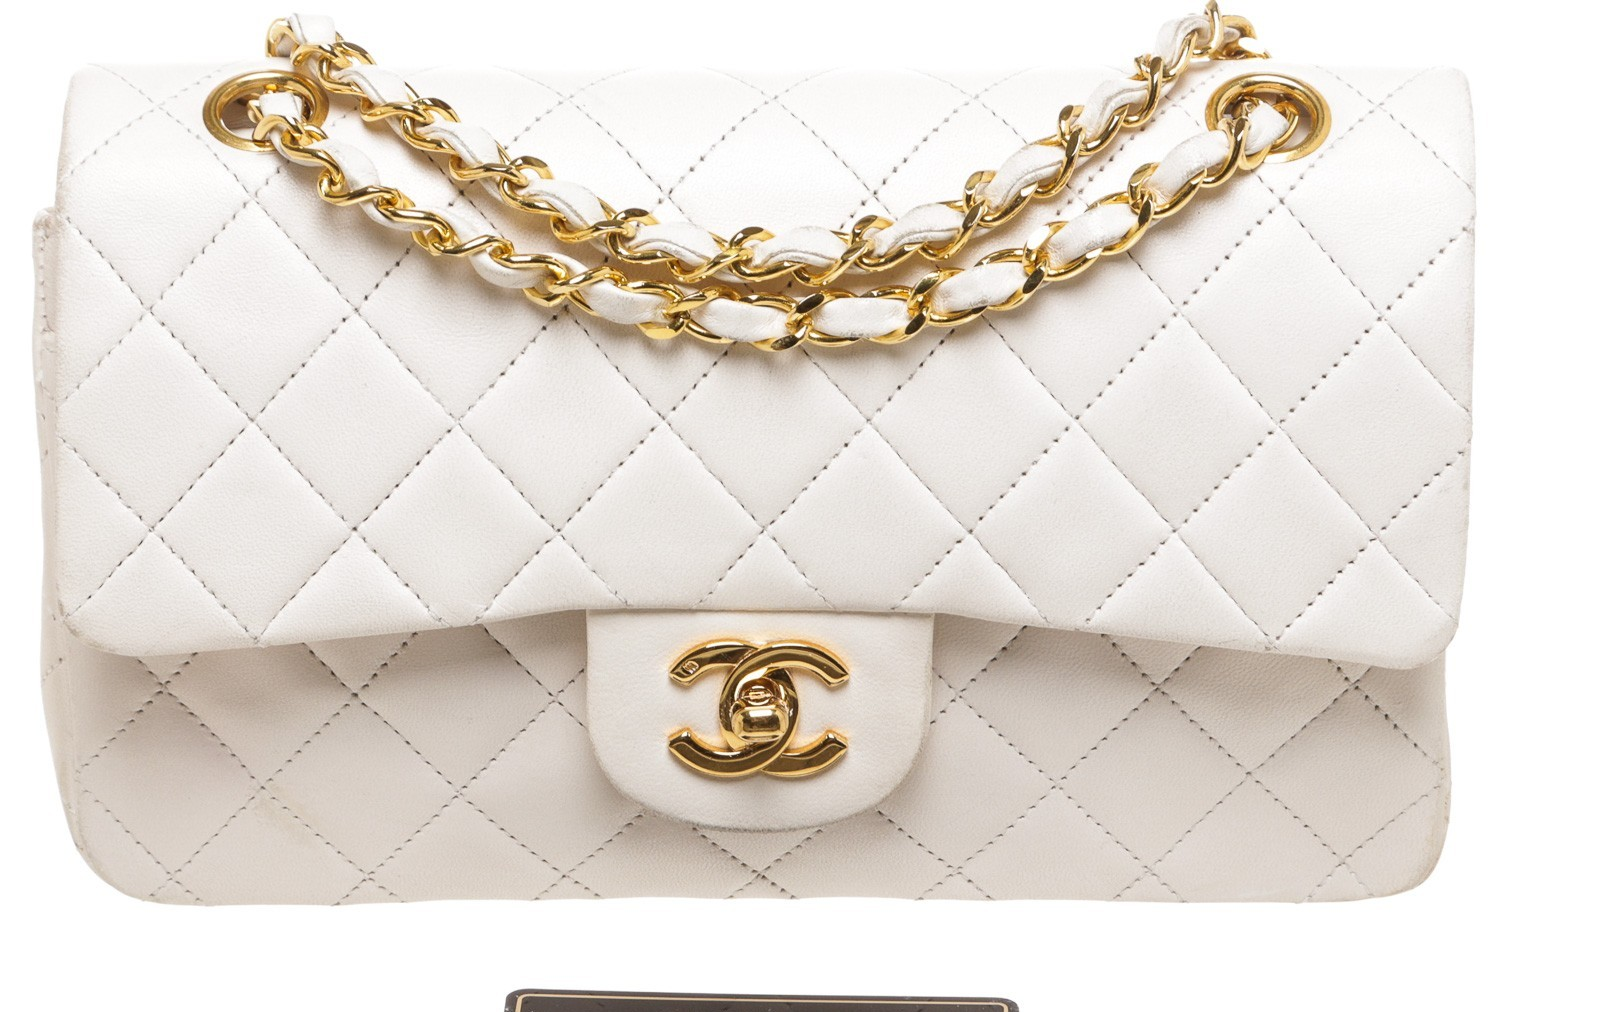 88531b94539d  4000 Chanel Classic White Quilted Lambskin Small Vintage Shoulder ...